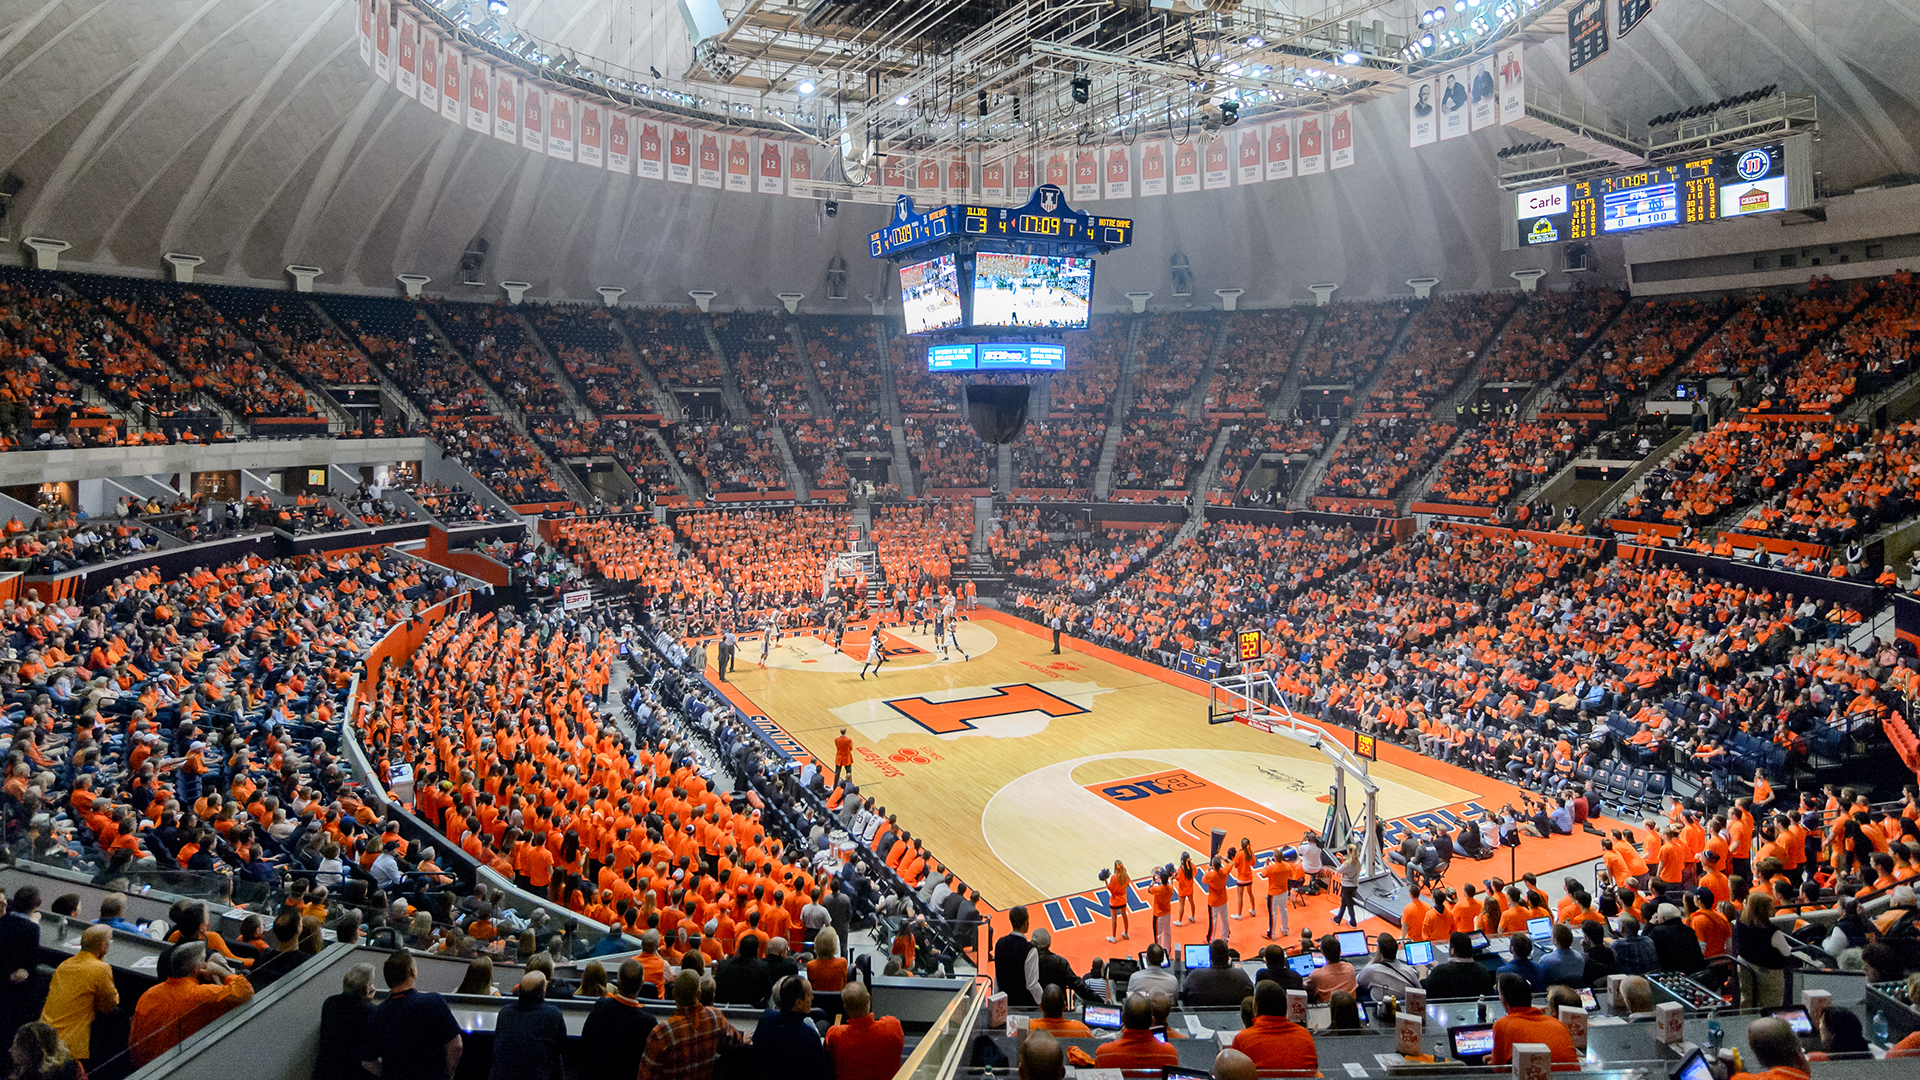 Illinois Premium Seating Fighting Illini Athletics 1920x1080